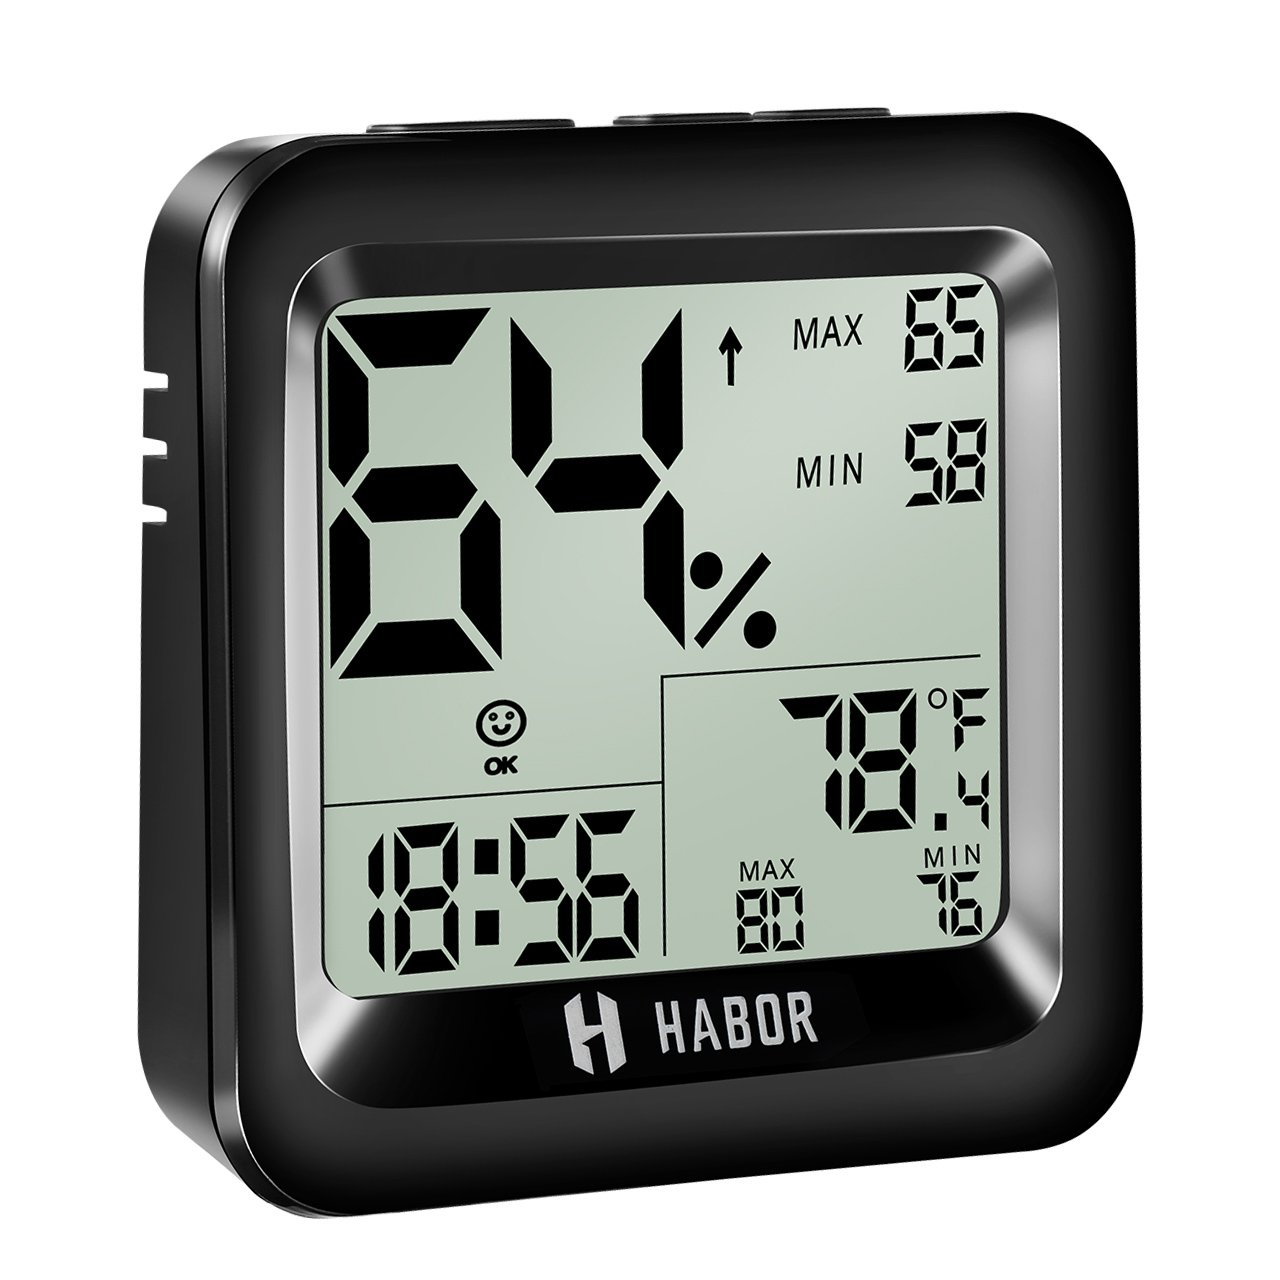 Habor Digital Thermo-hygrometer with Time Display, 2 Years Warranty, Monitor Temperature and Humidity for Comfort of Home/ Office/ Babyroom/ Car, Min/Max Records - Black 1